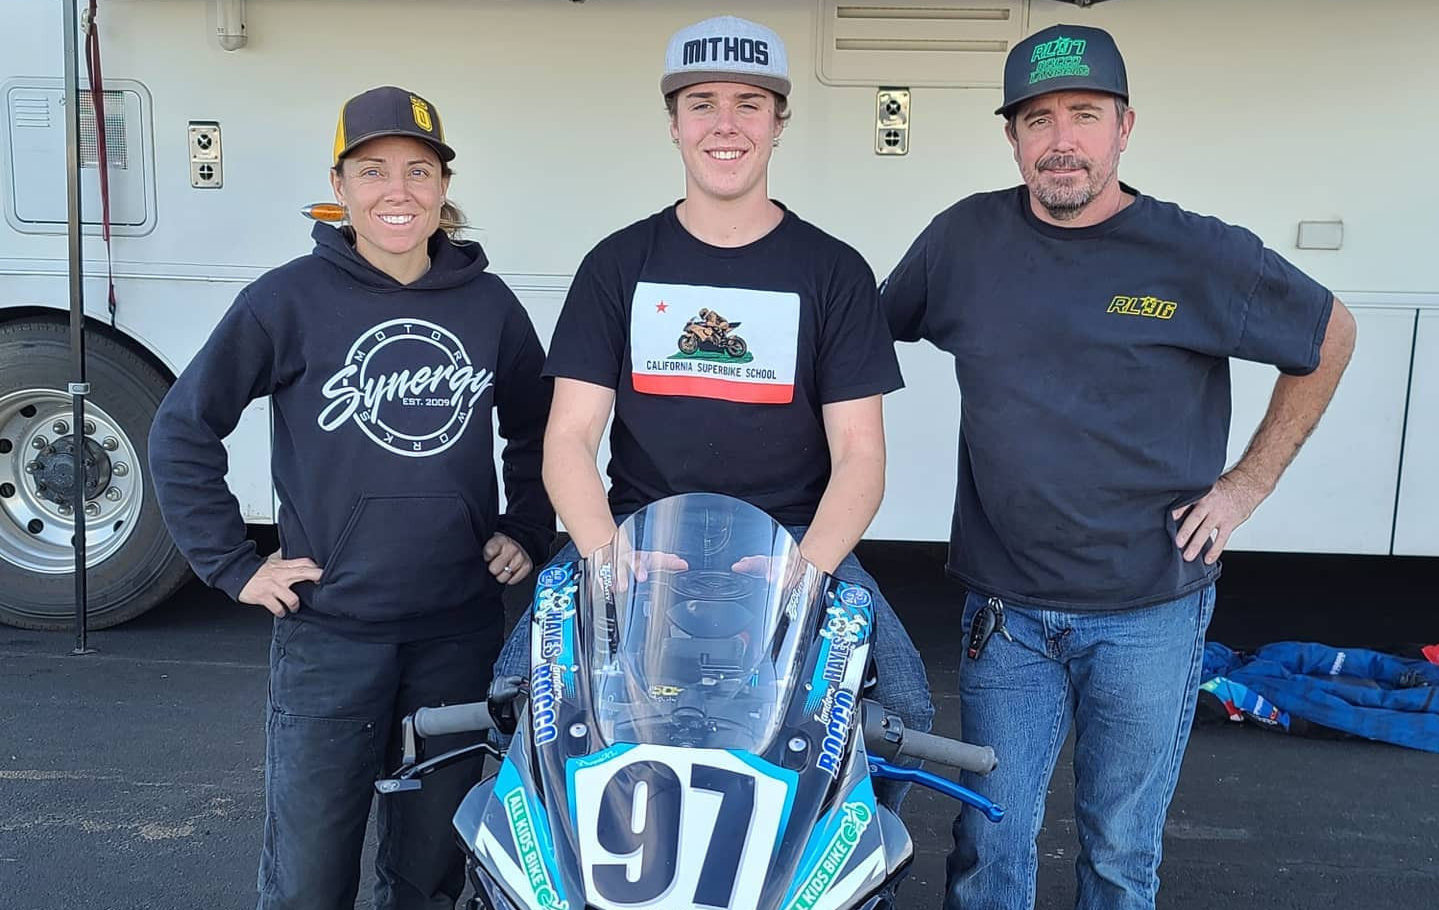 Rocco Landers (center) with his father Stoney Landers (right) and MP13 Racing Team Owner Melissa Paris (left) at Chuckwalla Valley Raceway. Photo courtesy Rocco Landers.